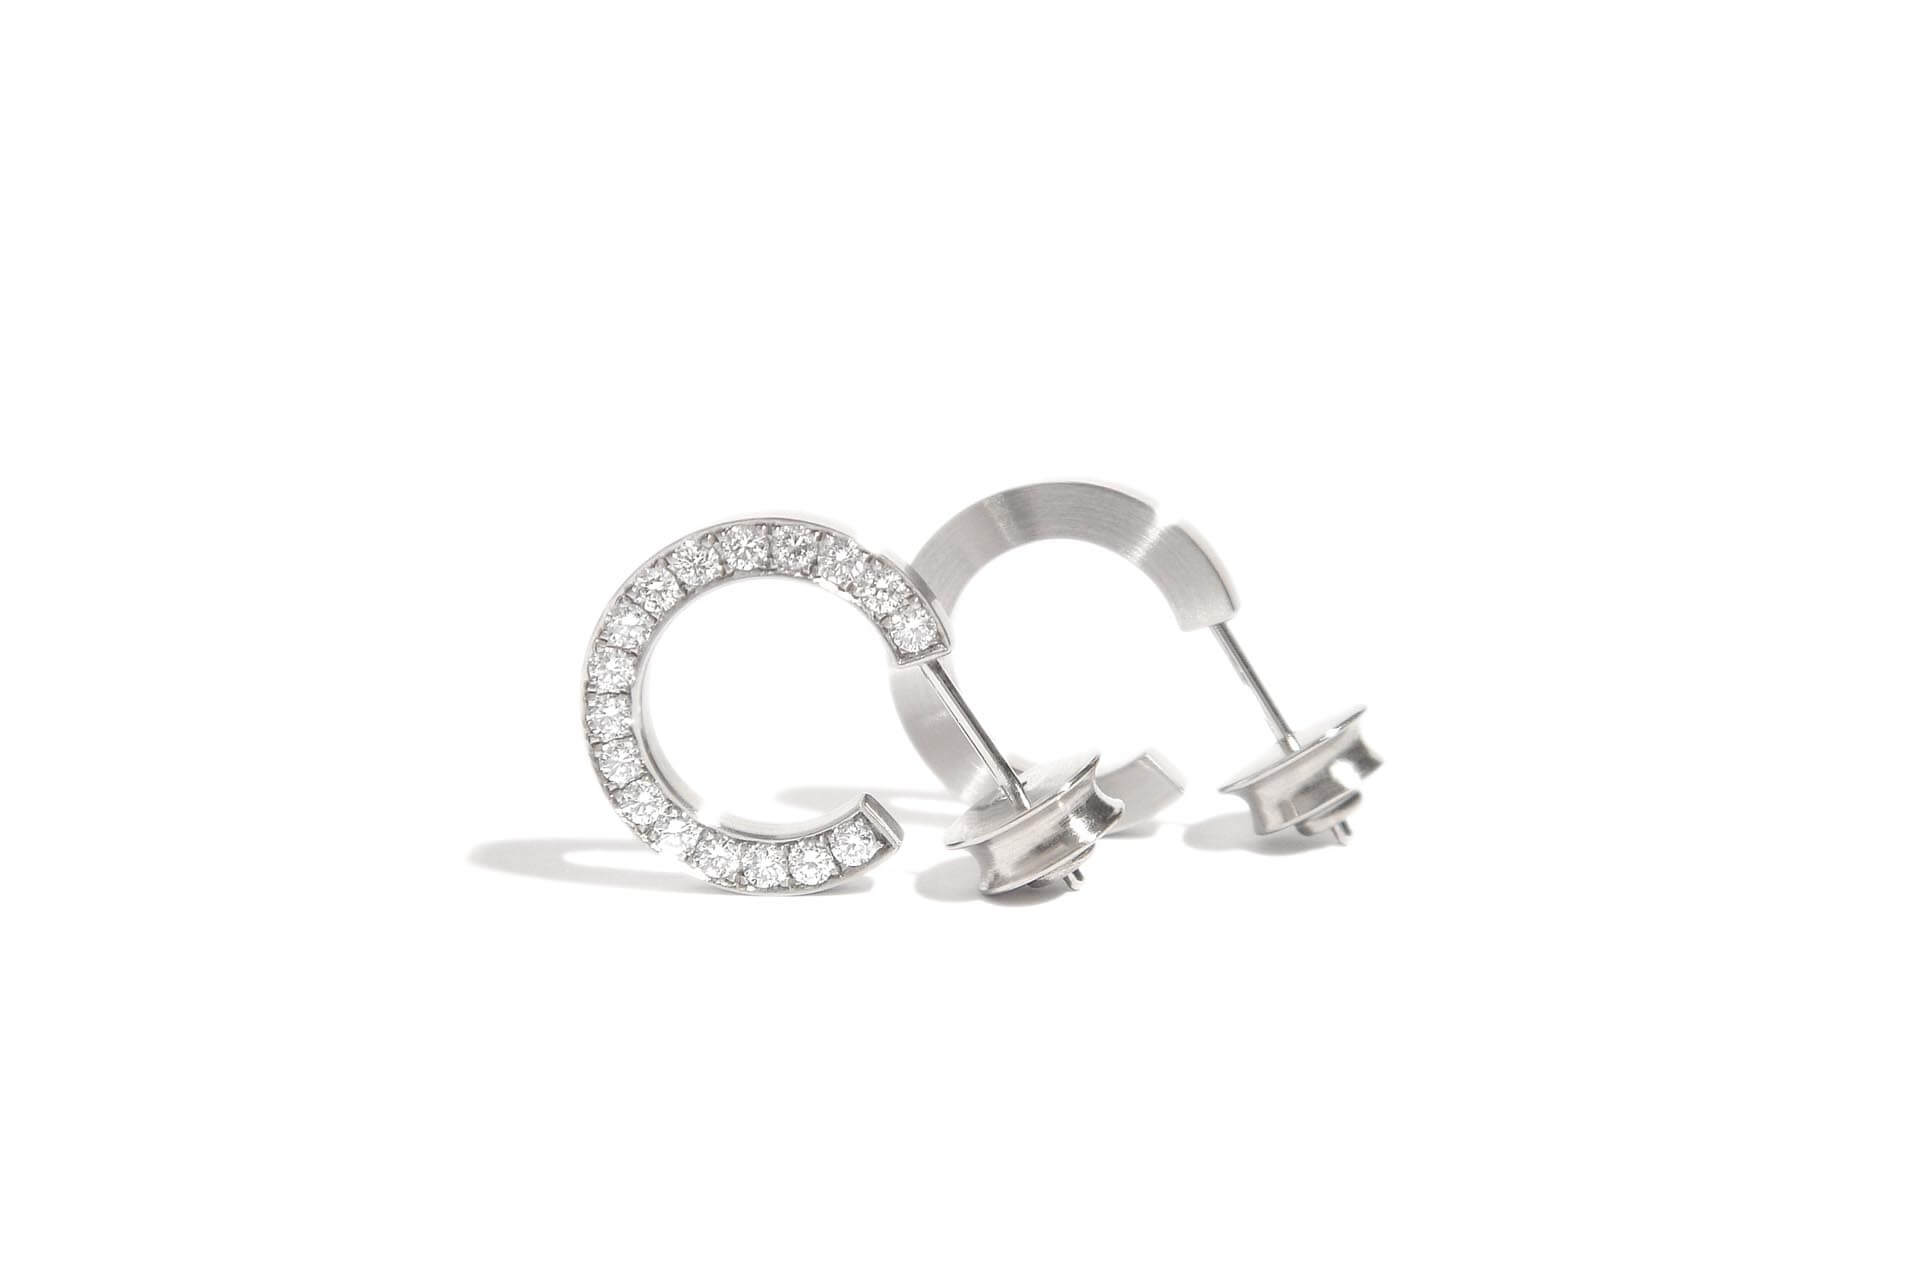 Stainless steel hoop earrings with 34 diamonds set on the side. J.9.004